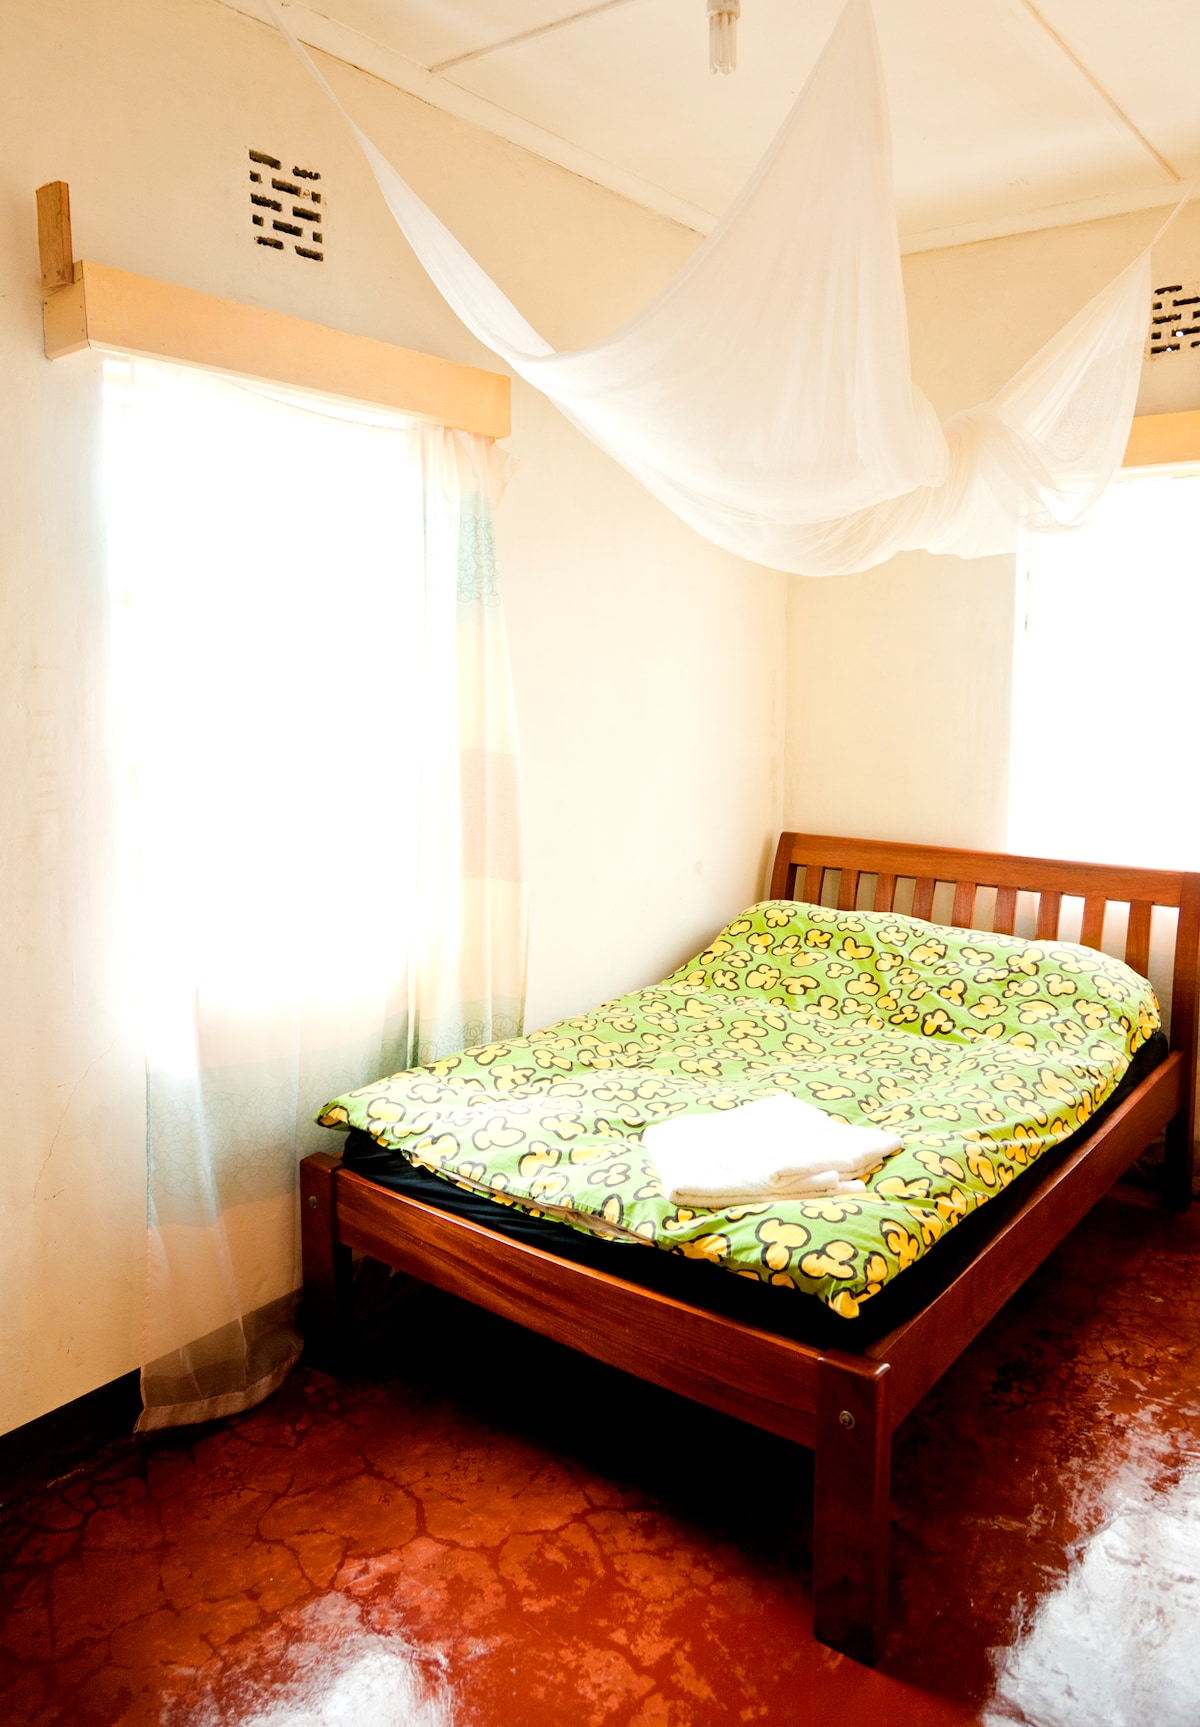 Room 1, two windows with view onto the garden and the Ngong Hills